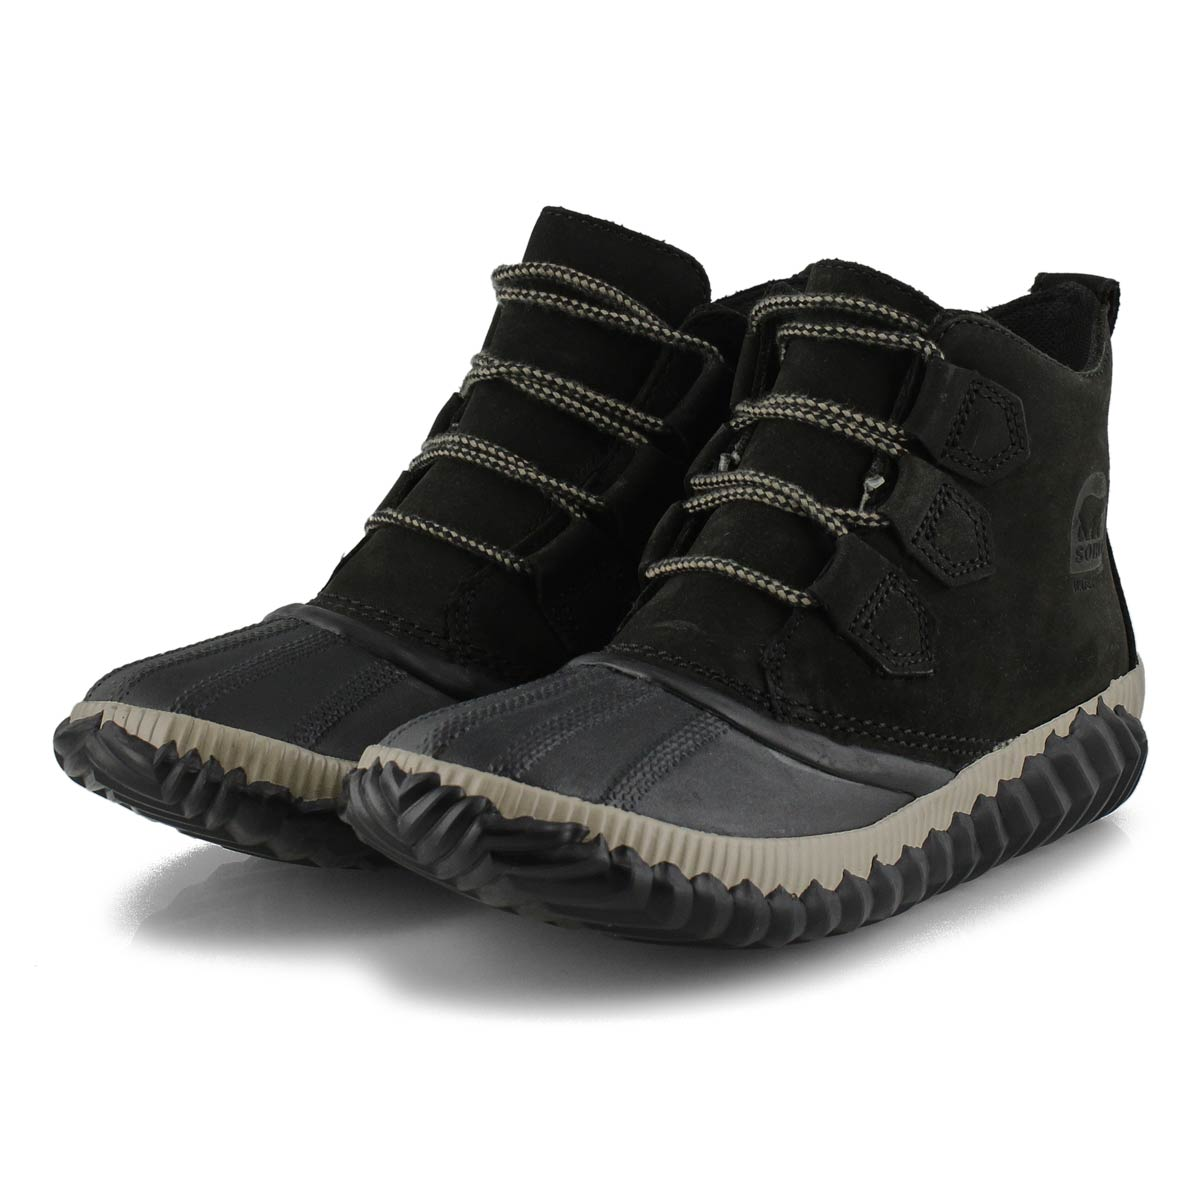 Women's Out'N About Plus Boot - Black